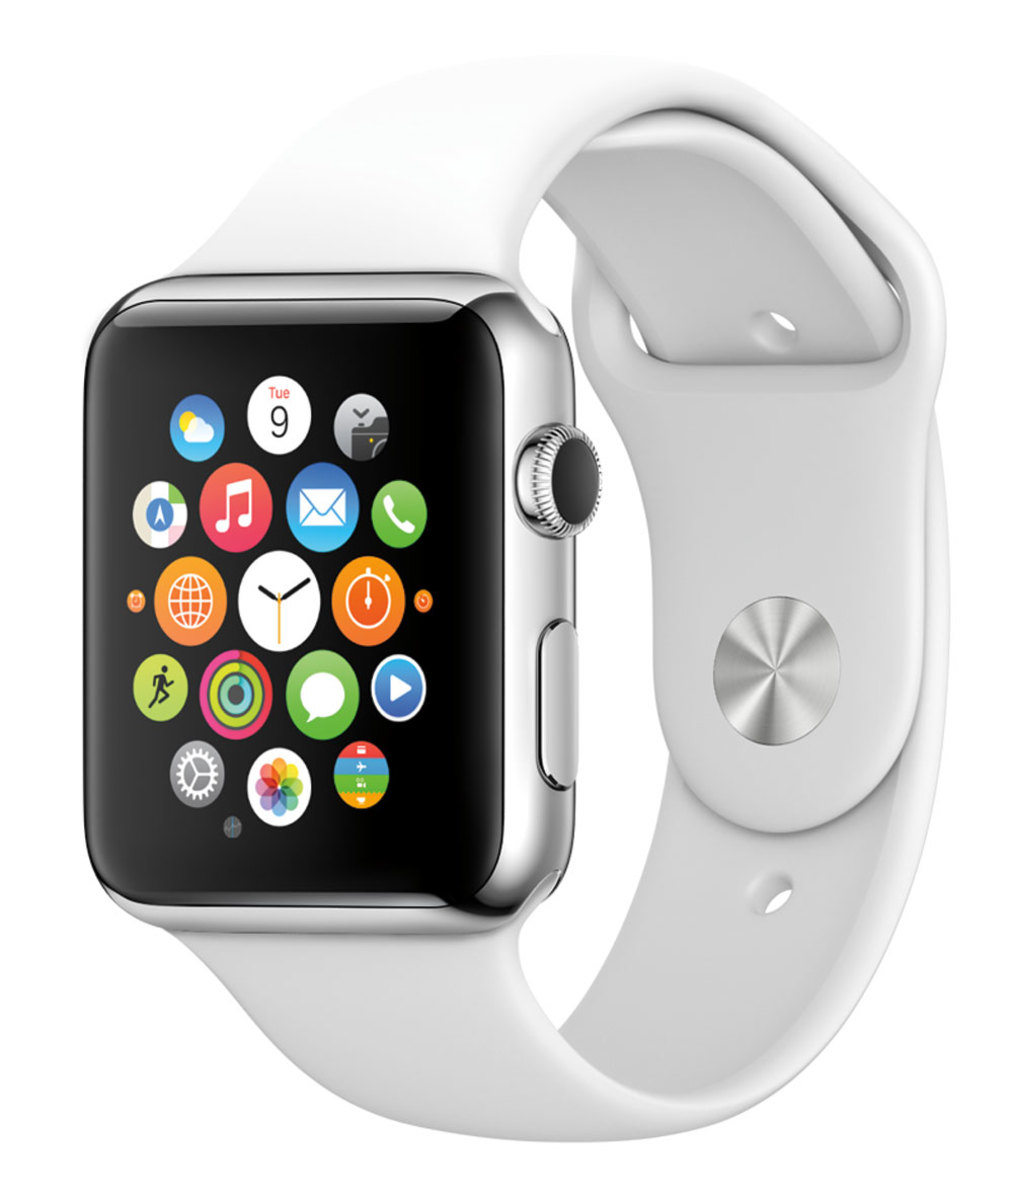 Distracted By Technology Focusing >> The Apple Watch S Distraction Problem Pacific Standard